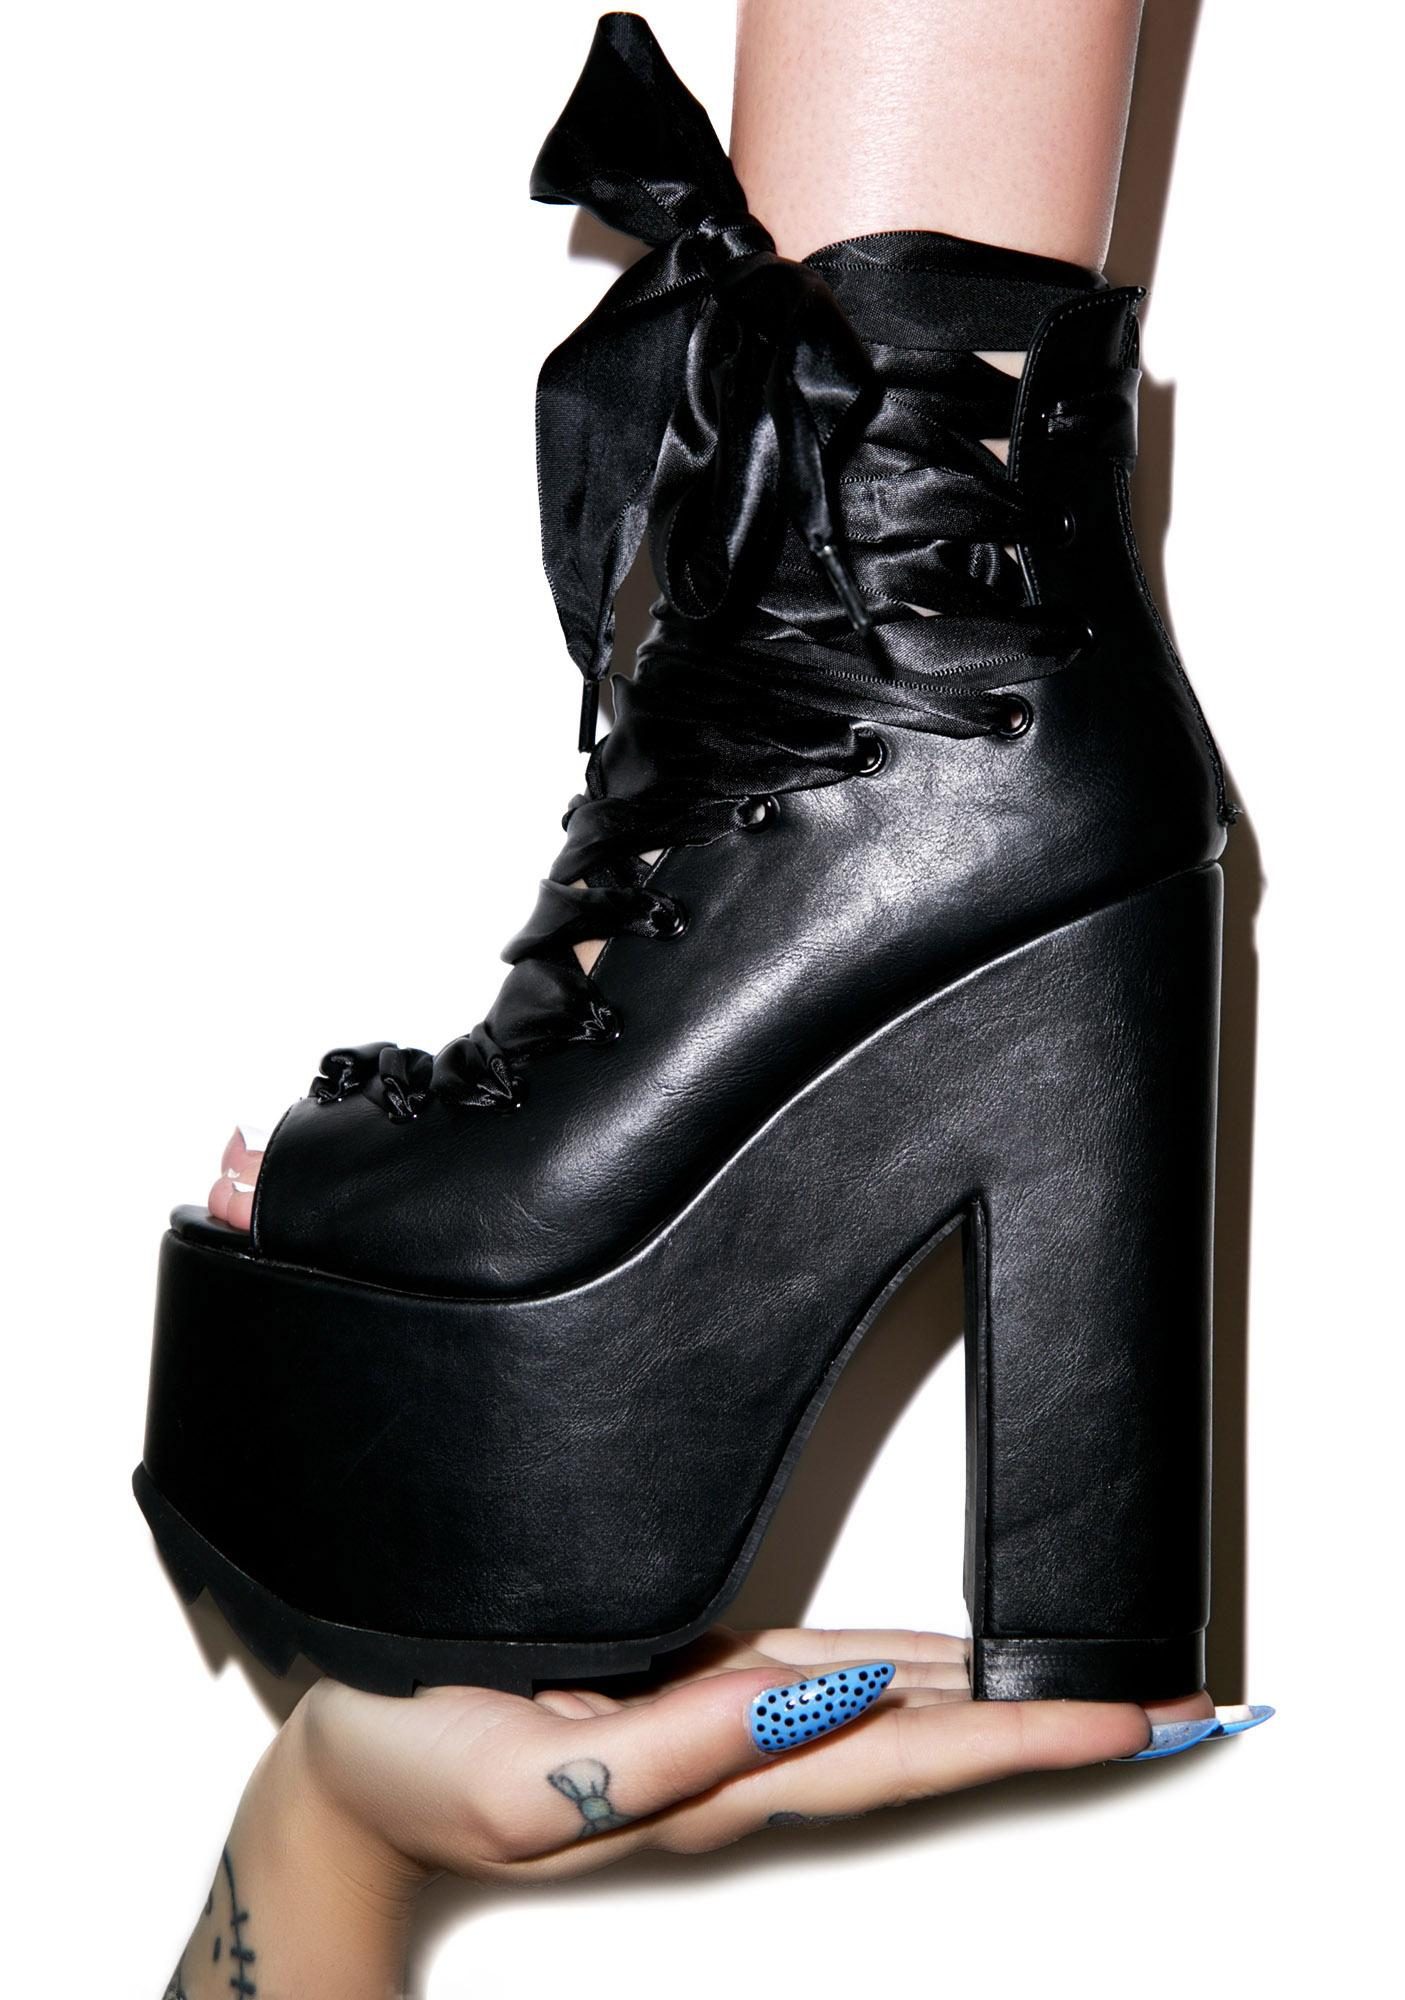 Find great deals on eBay for dolls kill shoes. Shop with confidence.